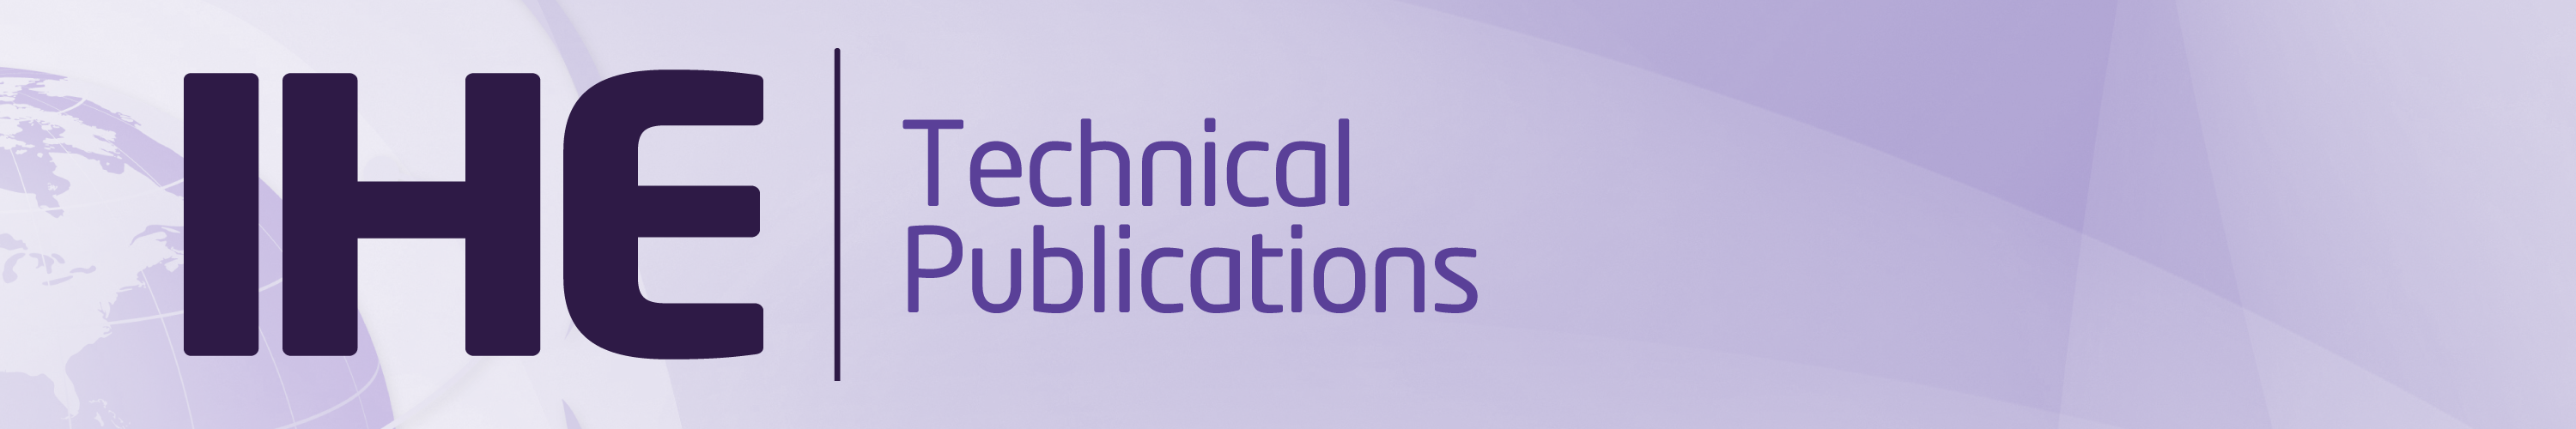 IHE Technical Publications